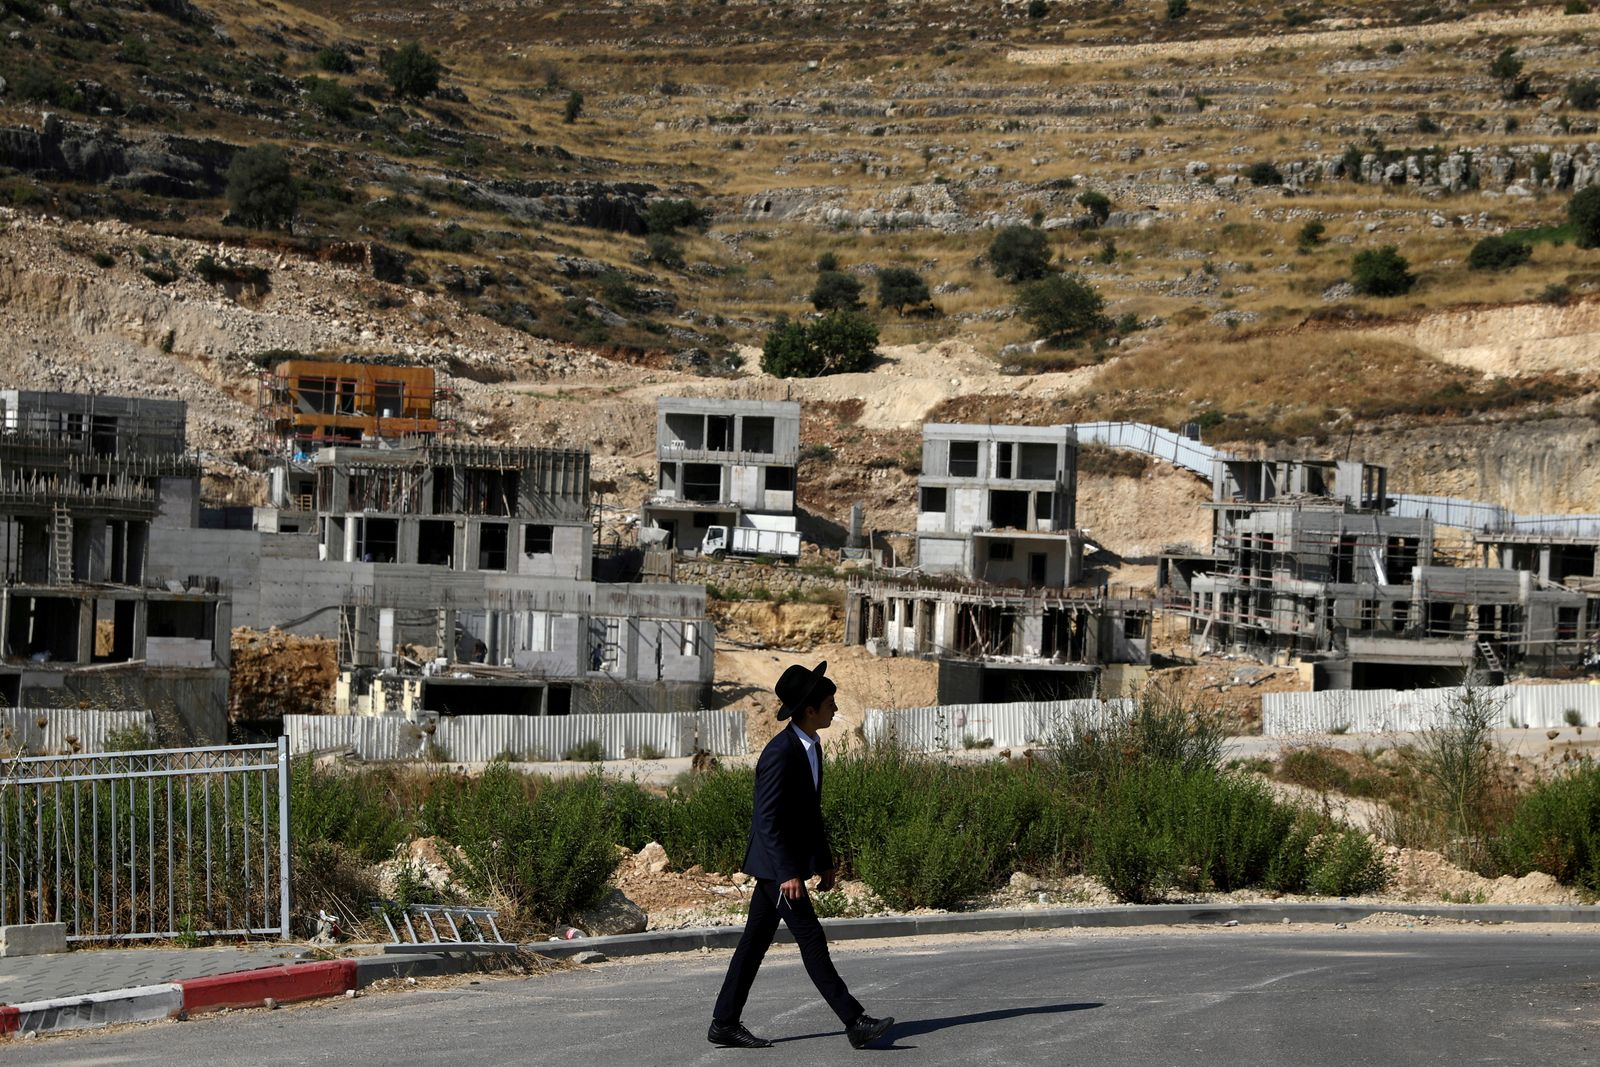 FILE PHOTO: A Jewish settler walks past Israeli settlement construction sites around Givat Zeev and Ramat Givat Zeev in the Israeli-occupied West Bank